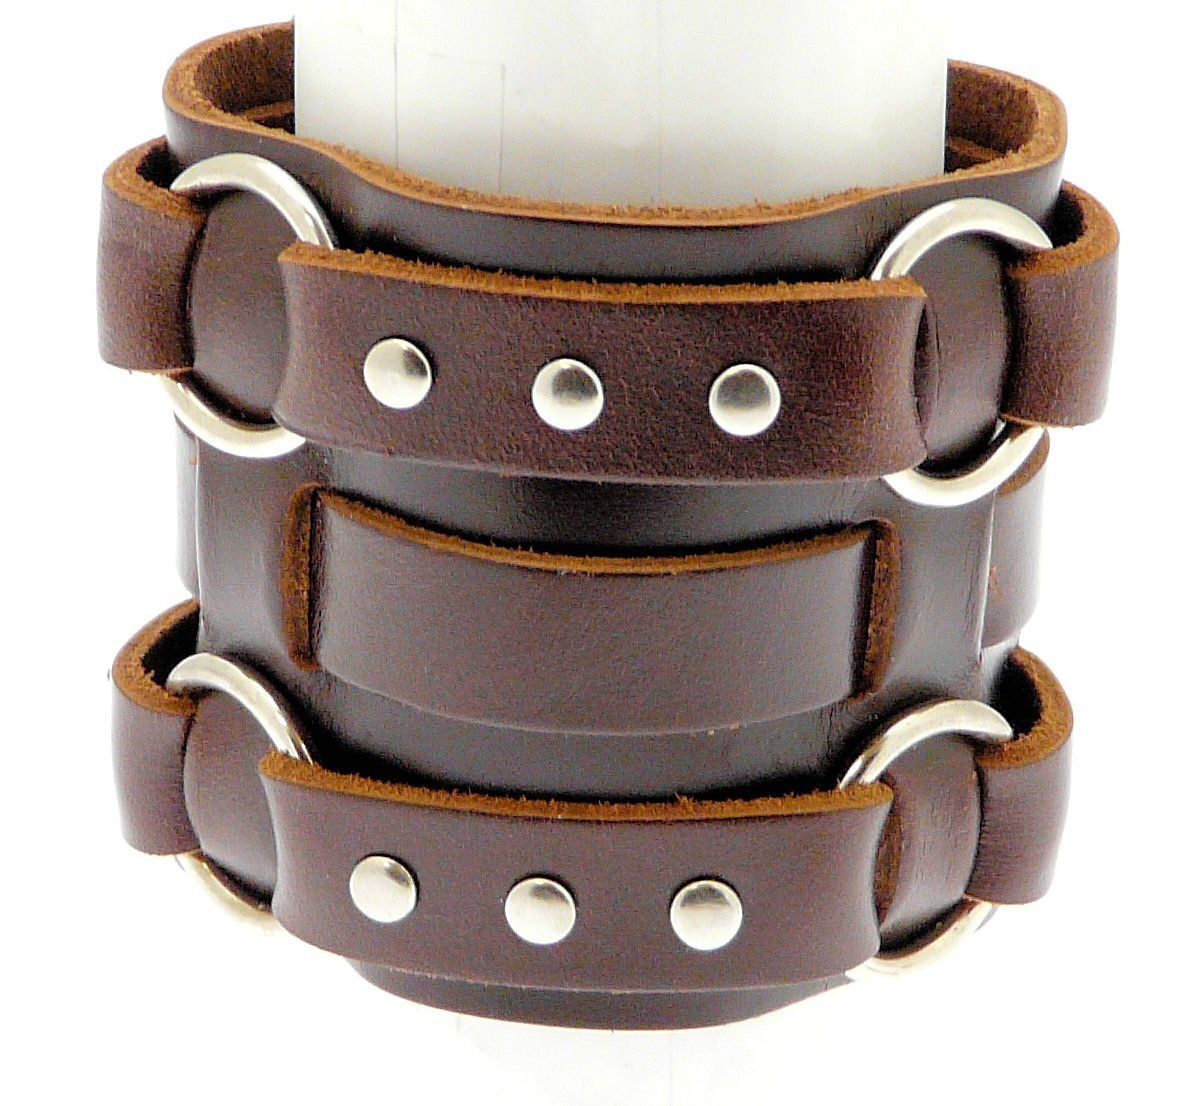 Cool Leather Bracelet For Men Neptune Giftware Wide Triple Strap Leather  Cuff Wrap Gothic Wristband